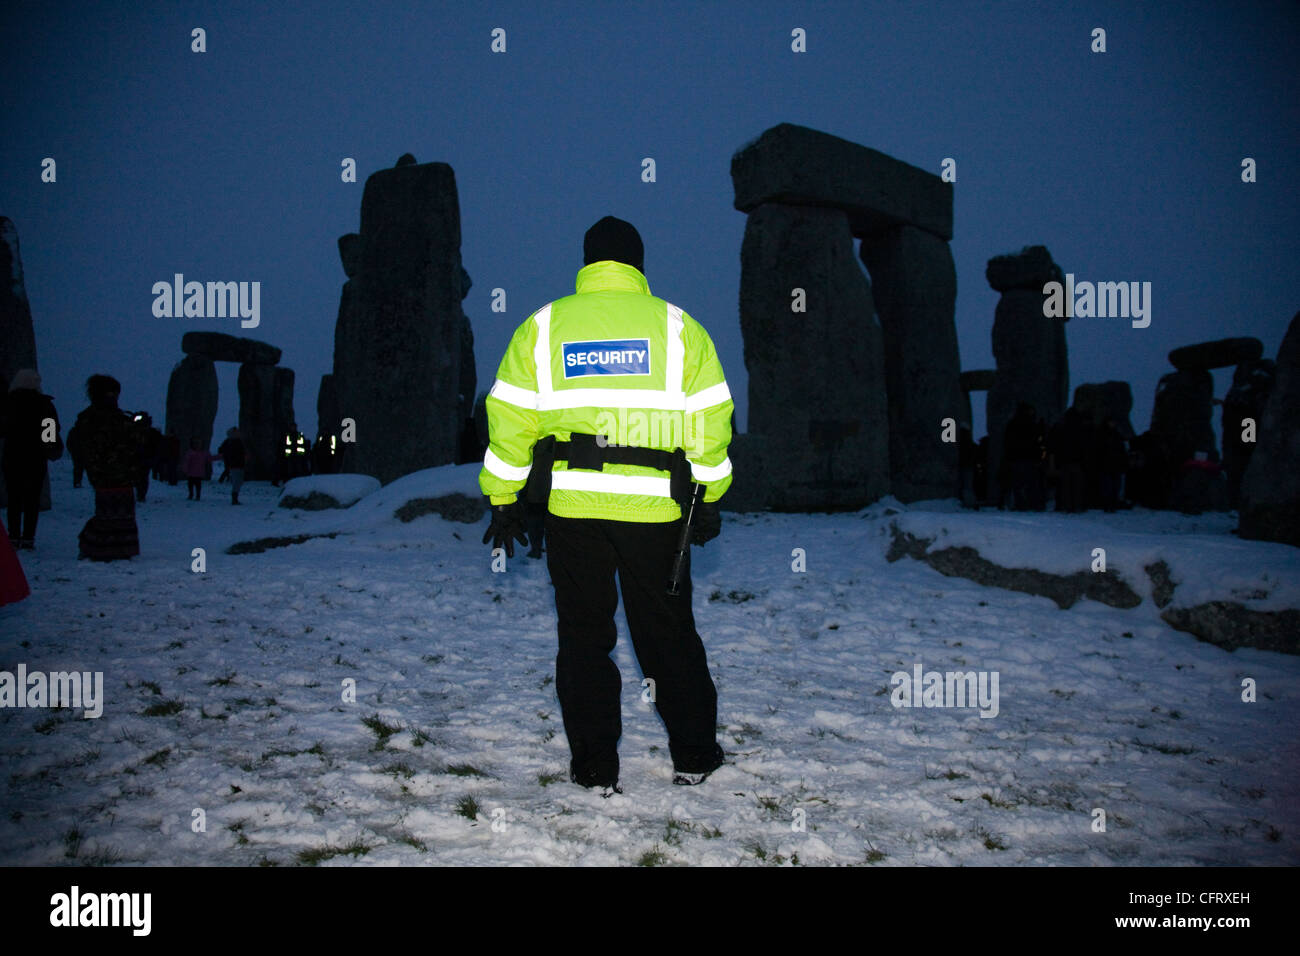 Security man guarding Stonehenge during the Winter Solstice - Stock Image